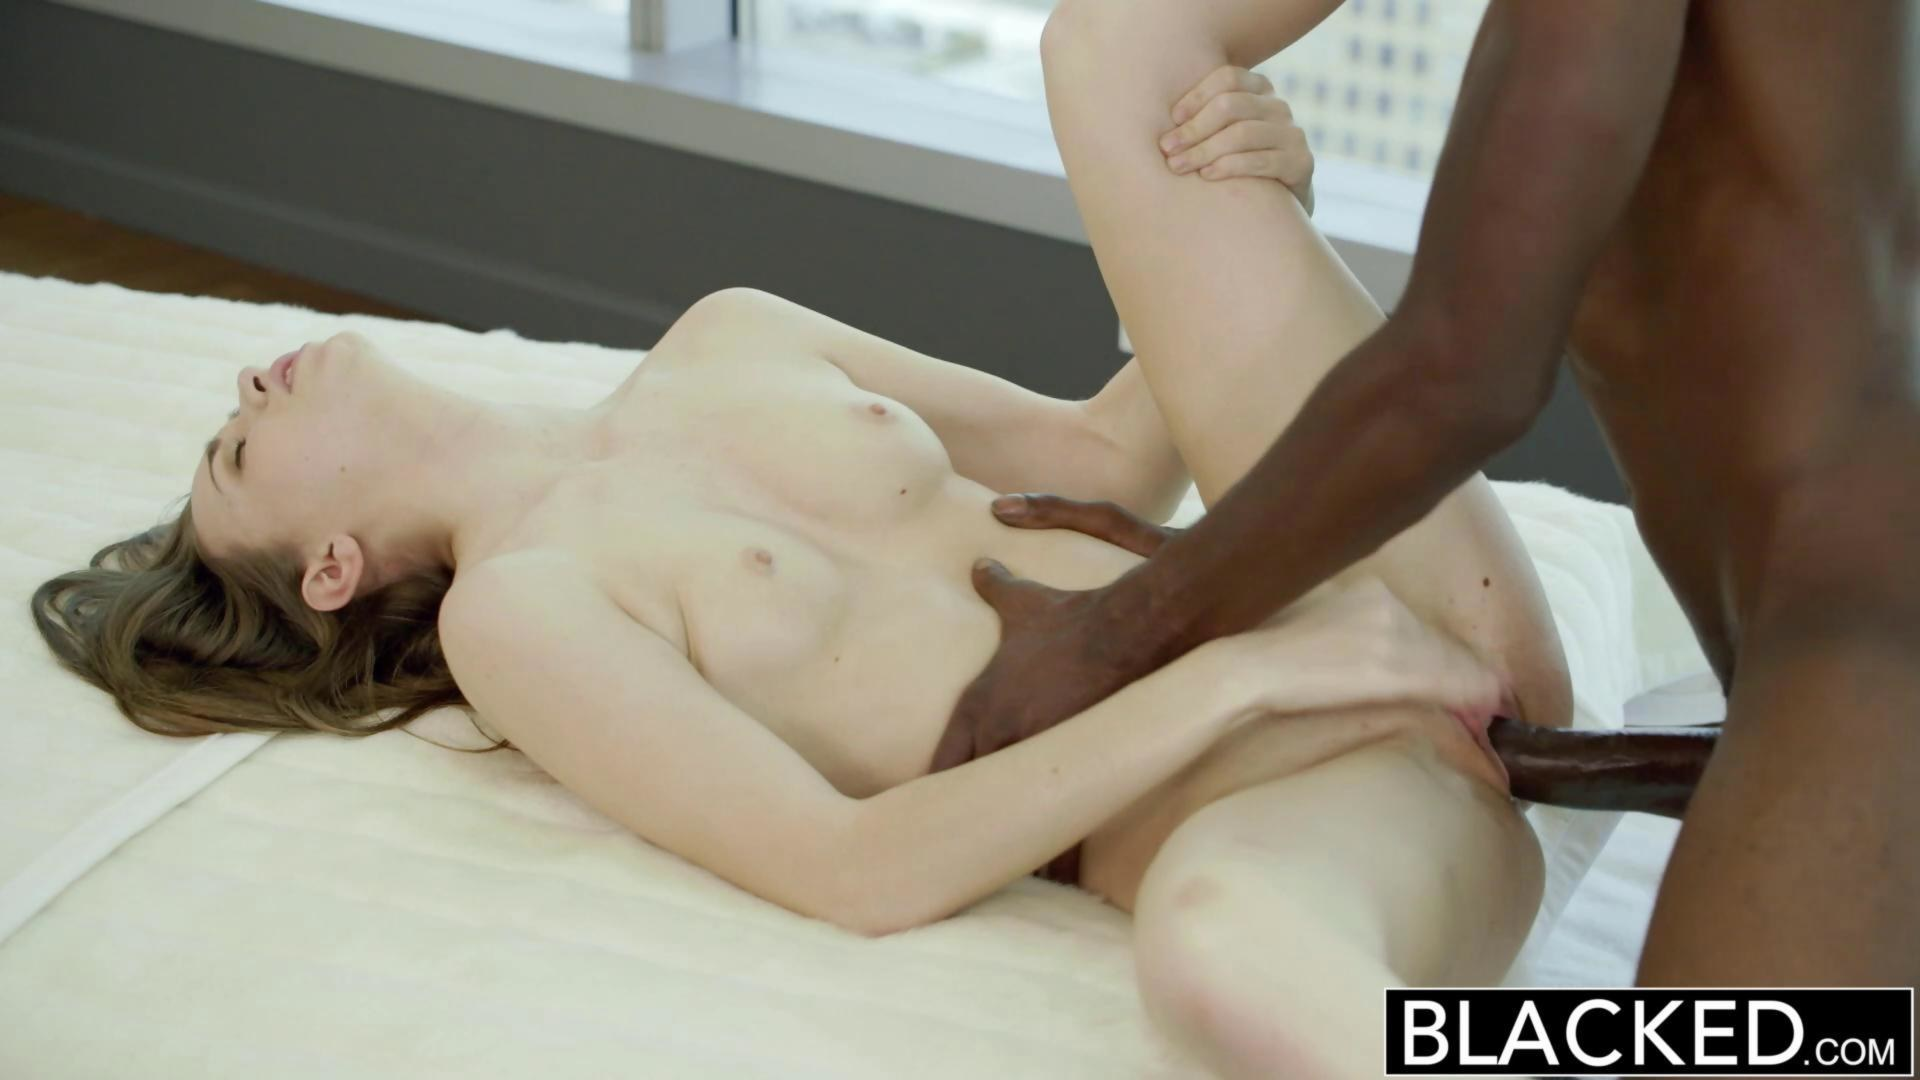 Blacked tali dovas boyfriend lets her try a big black cock - 1 7